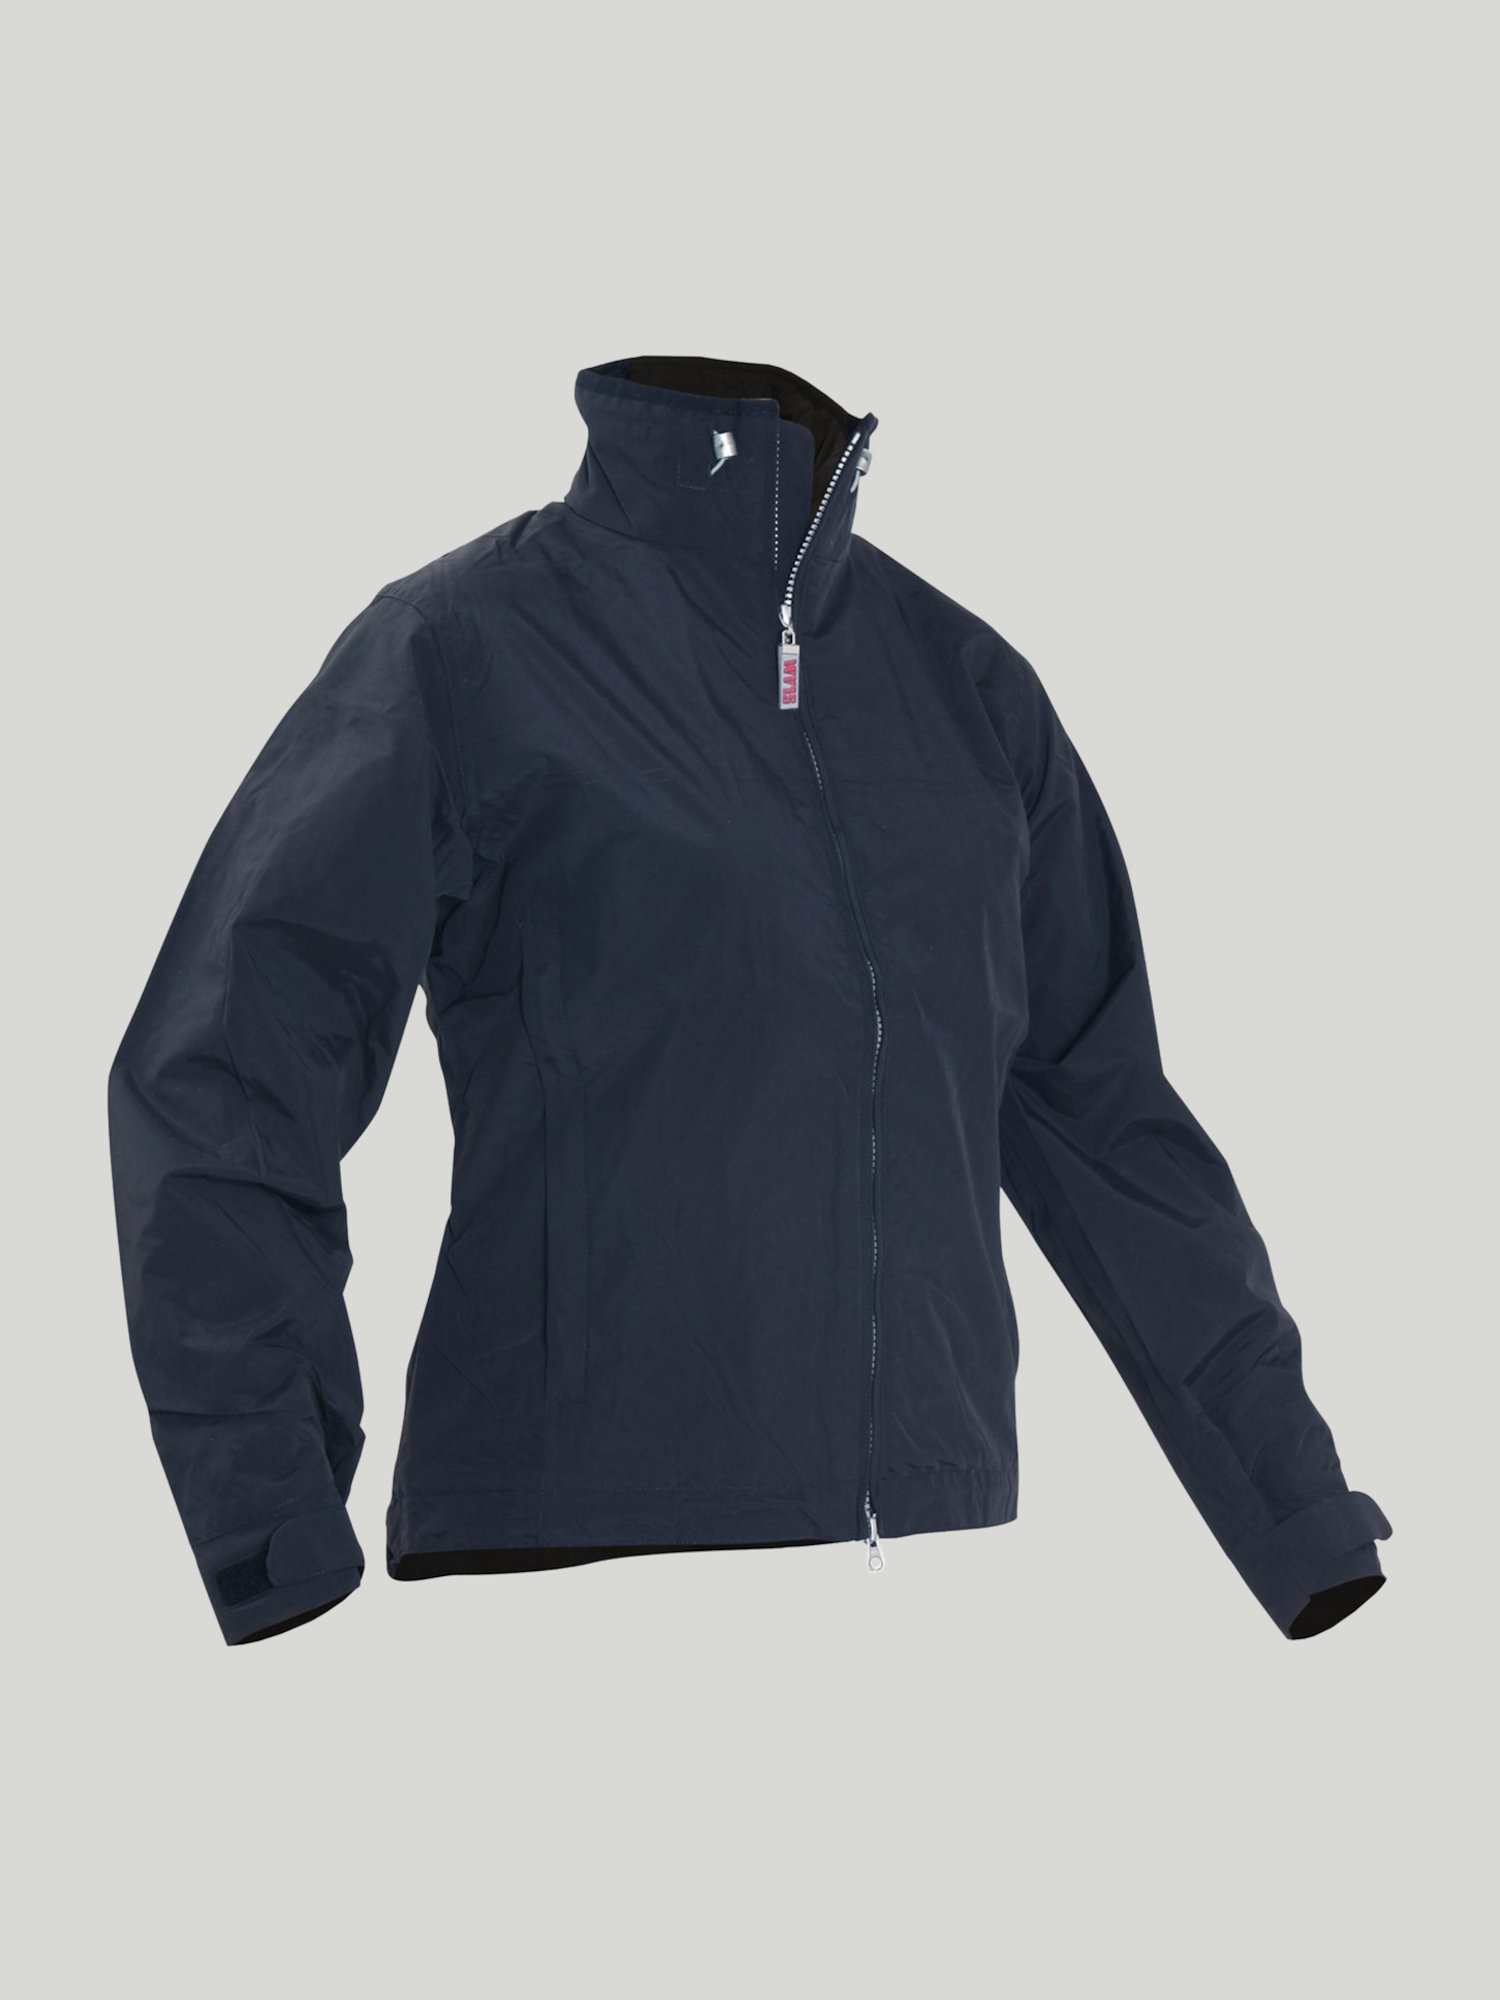 Women's Sum. Sail. Jacket - Navy